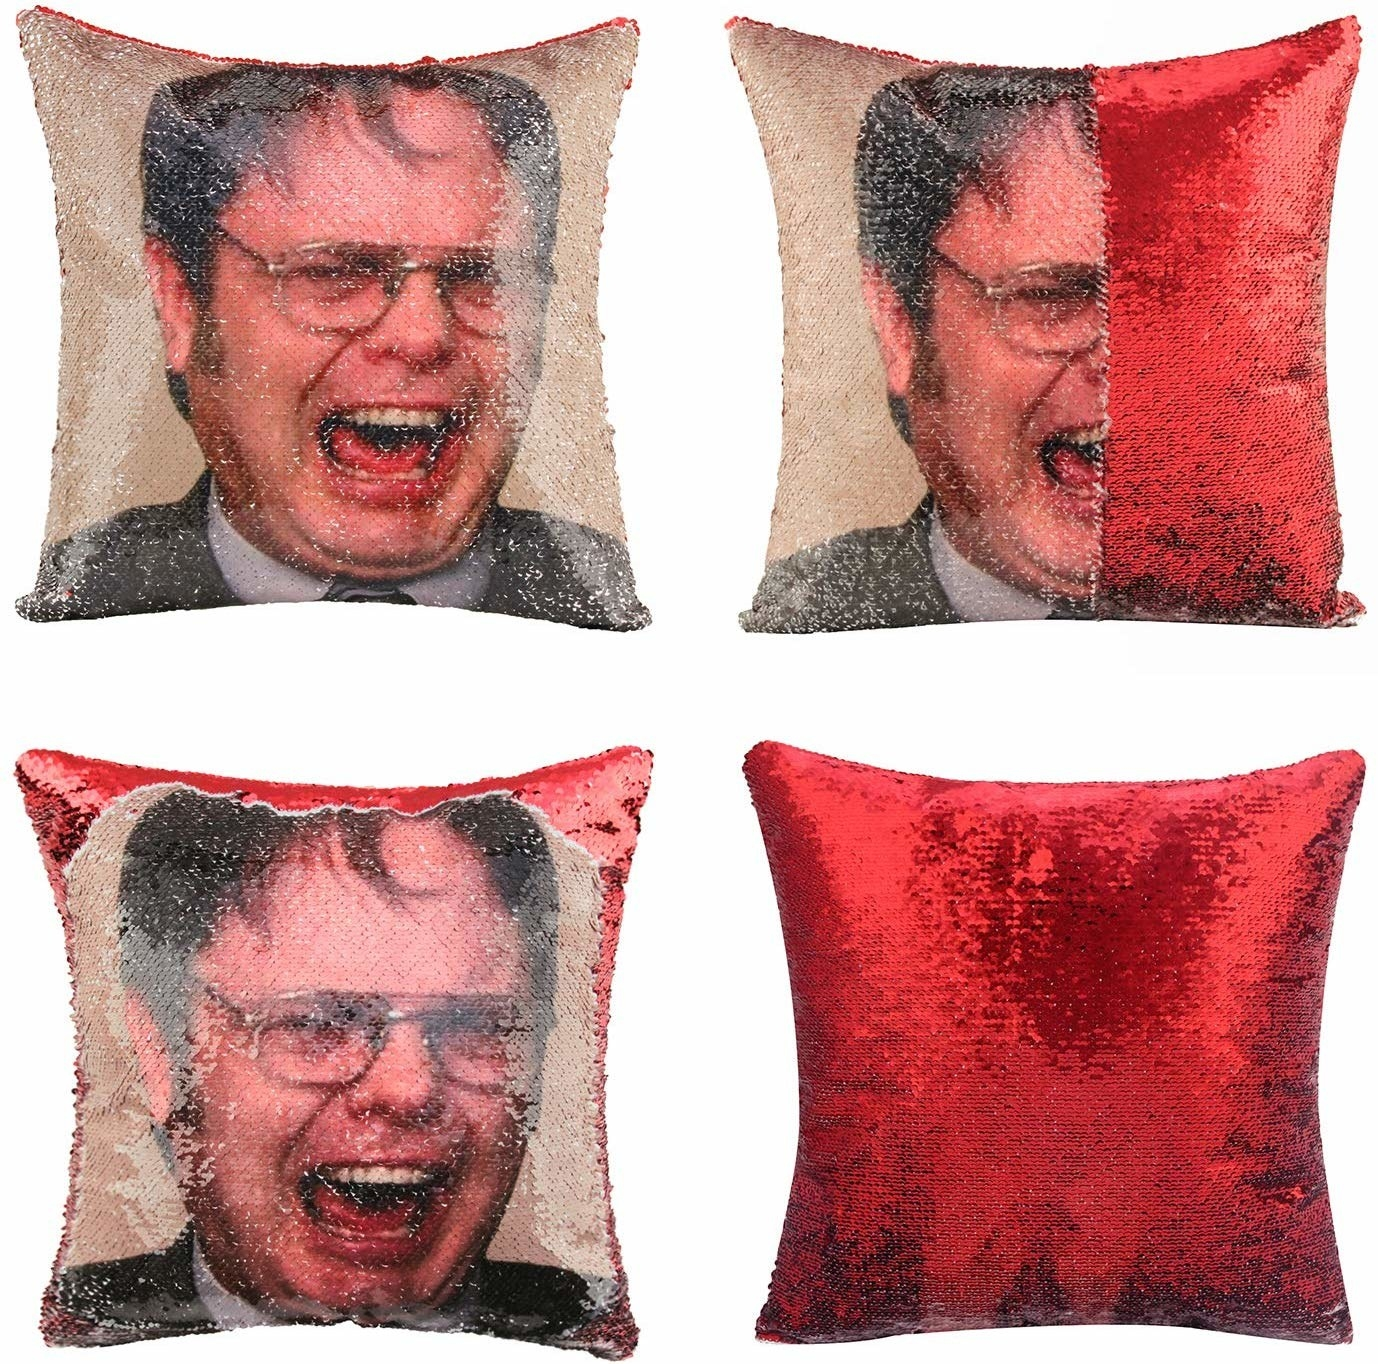 sequin pillow that can be flipped between an image of Dwight Schrute screaming and red sequins